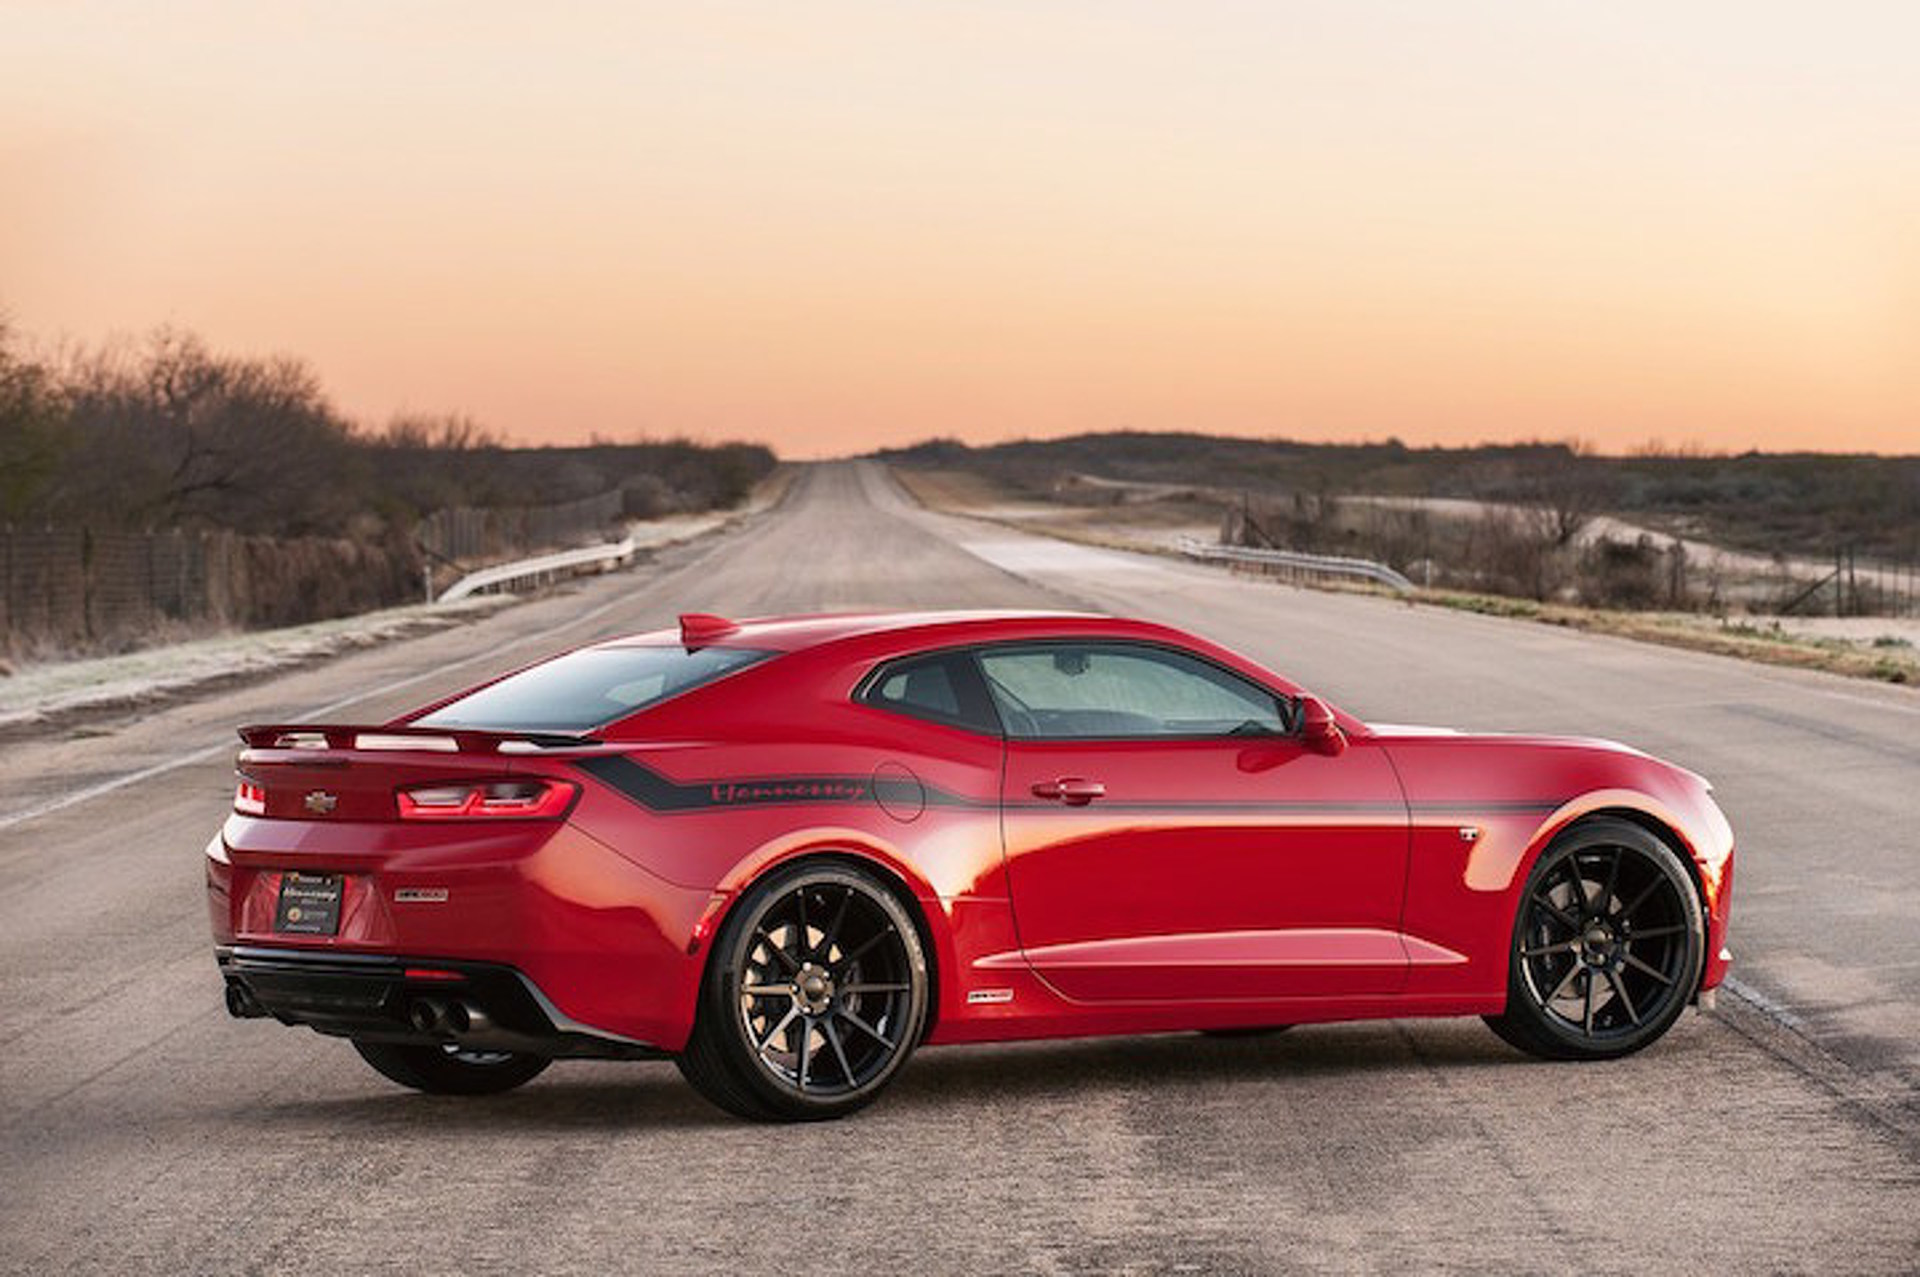 Hennessey Just Blasted the 2016 Camaro Up to 202 MPH